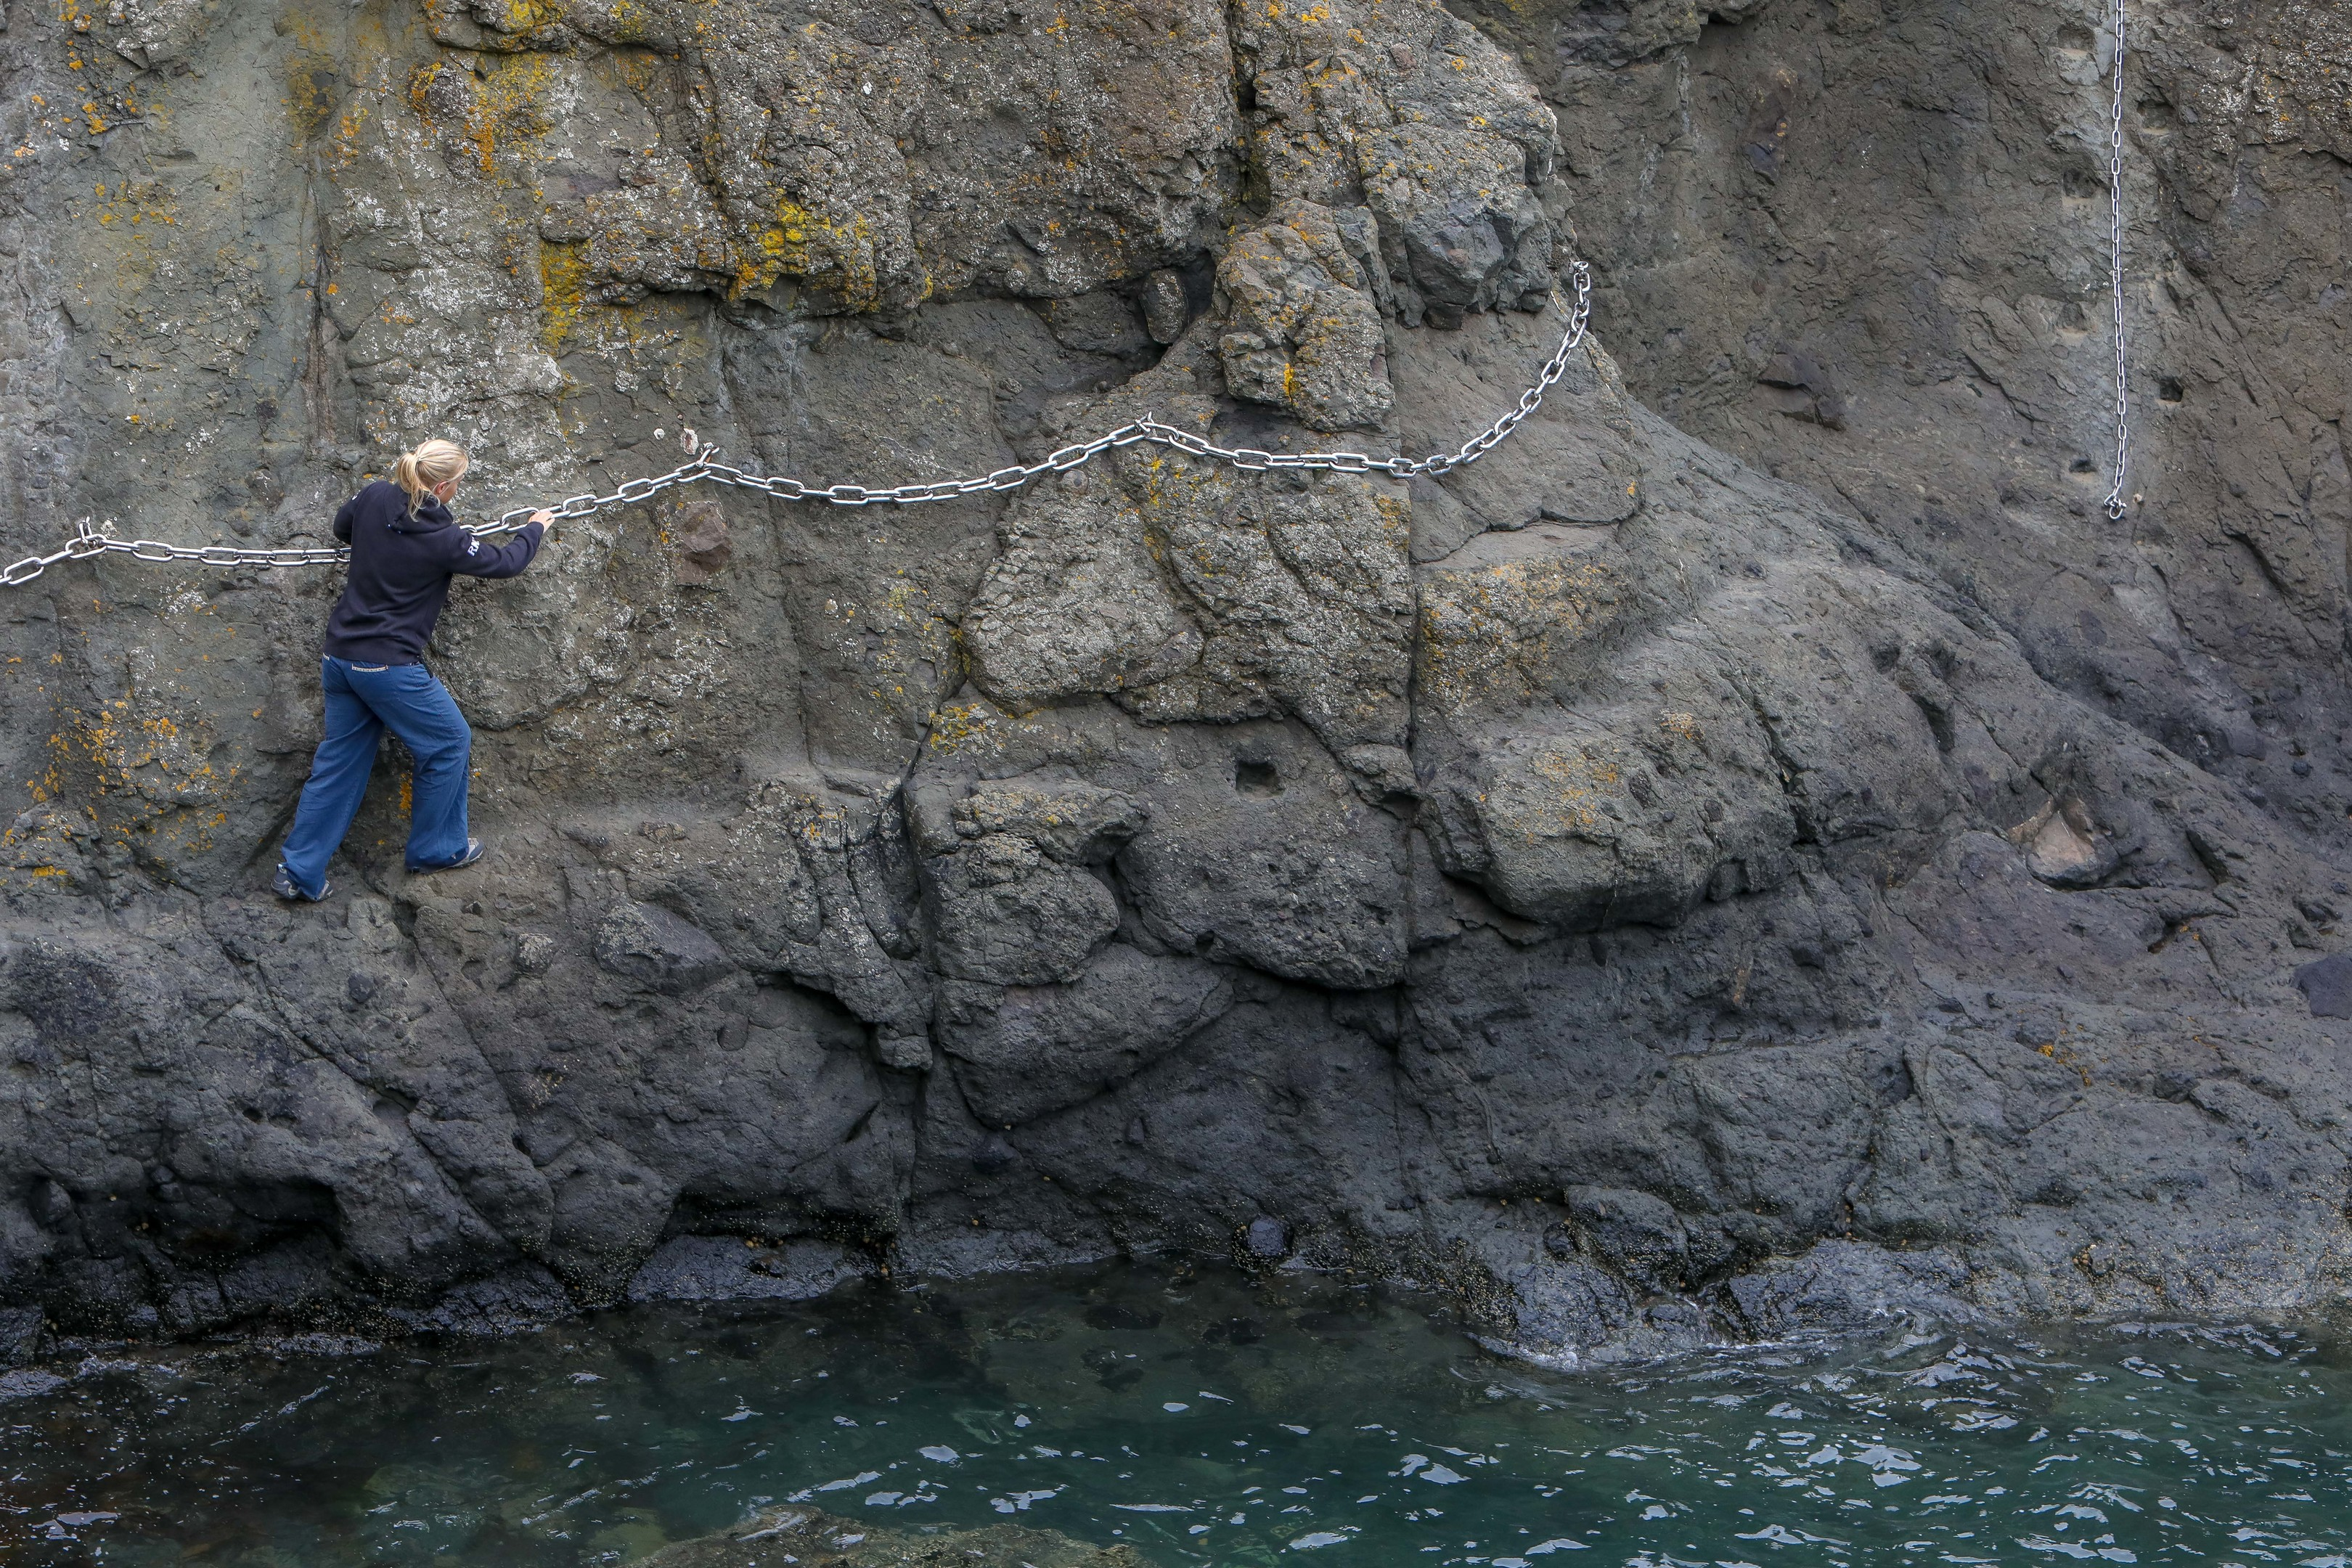 Crew member Becci Jewell navigates a tricky section of the Chain Walk.